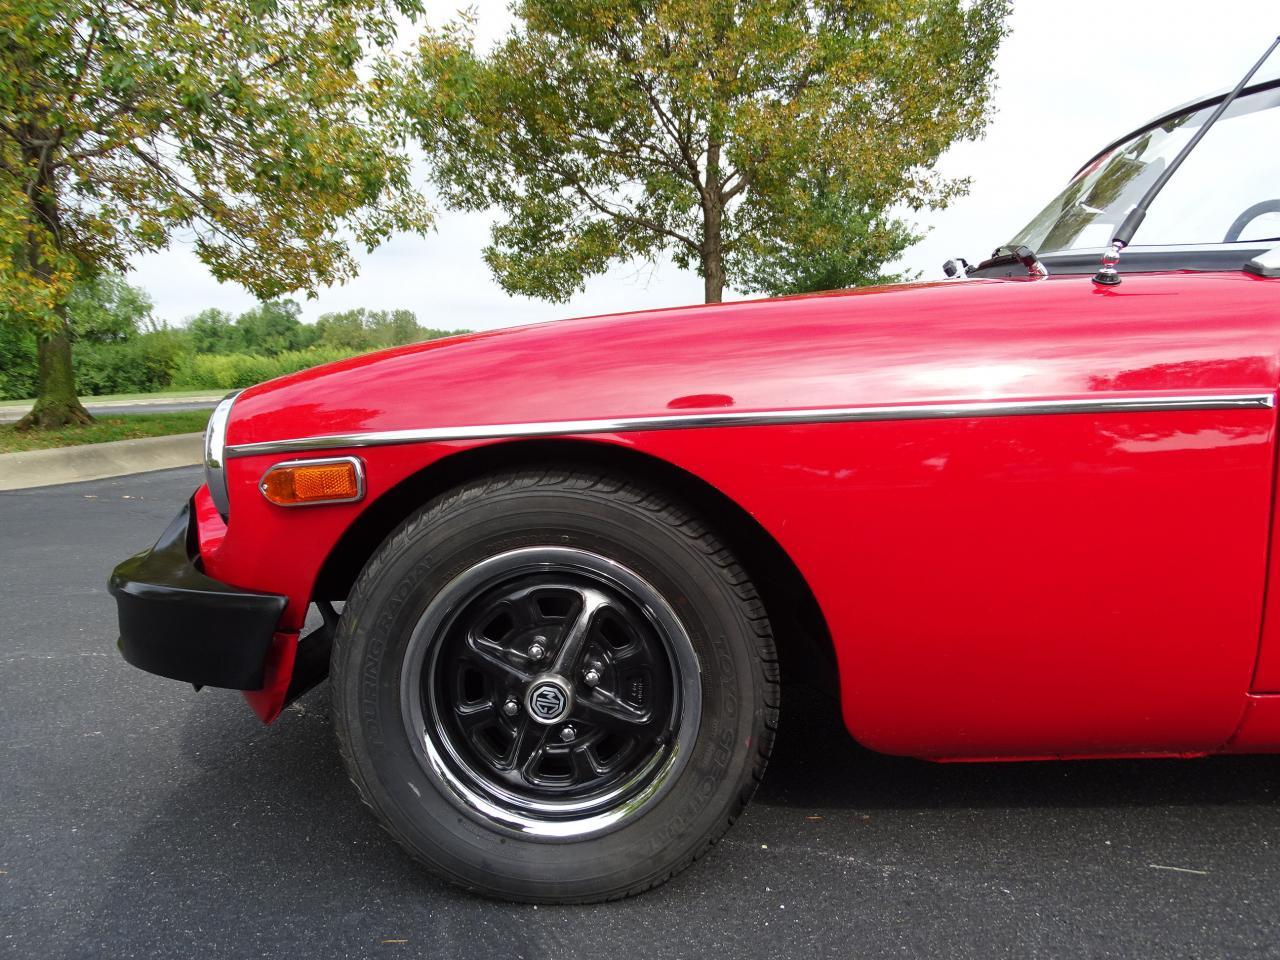 Large Picture of 1978 MG MGB located in O'Fallon Illinois - $11,995.00 Offered by Gateway Classic Cars - St. Louis - LVNA